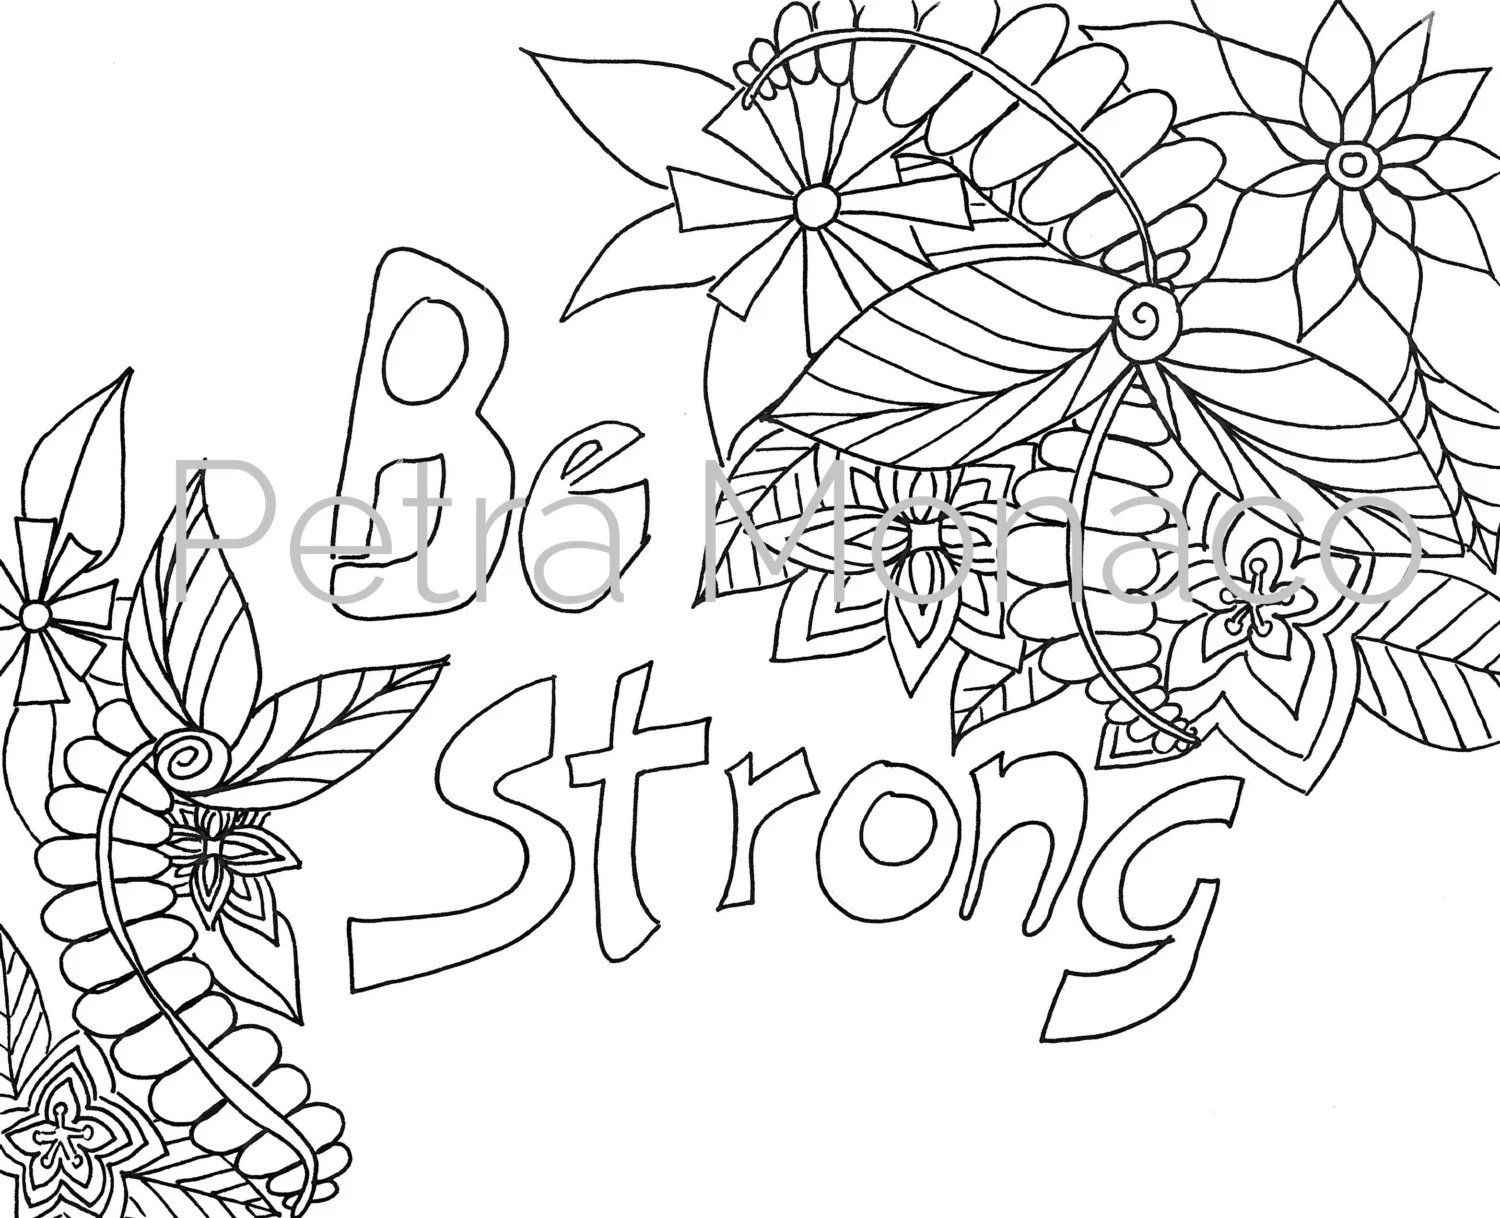 Be Strong Printable Affirmation Coloring Page